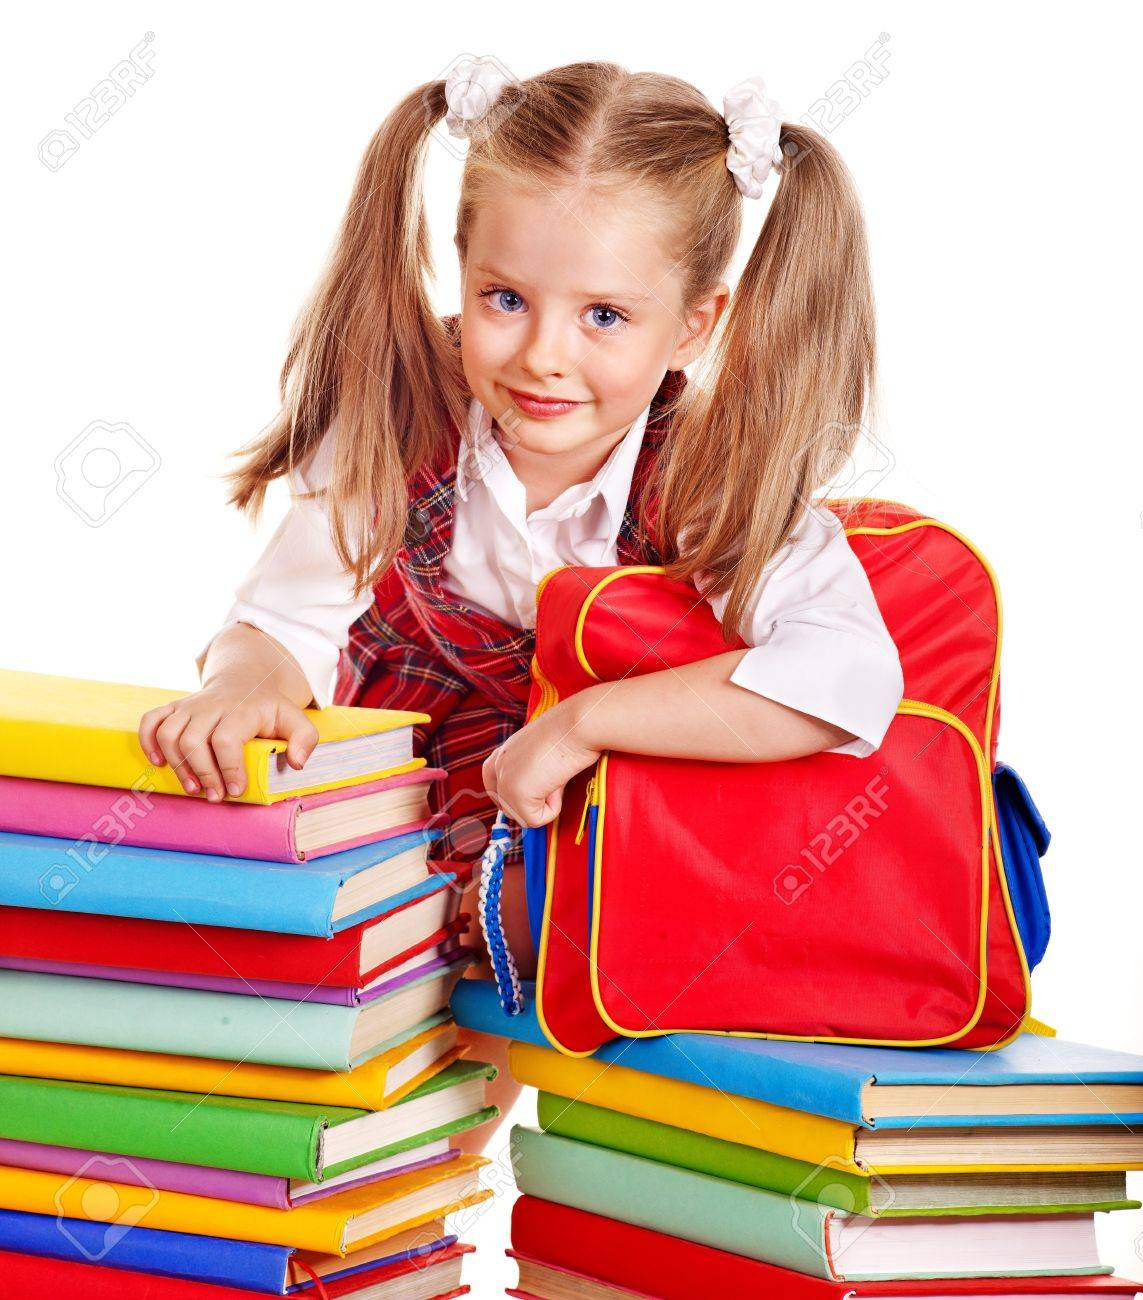 Happy child with backpack holding book. Isolated. Stock Photo - 14743217 a2d10402f9126